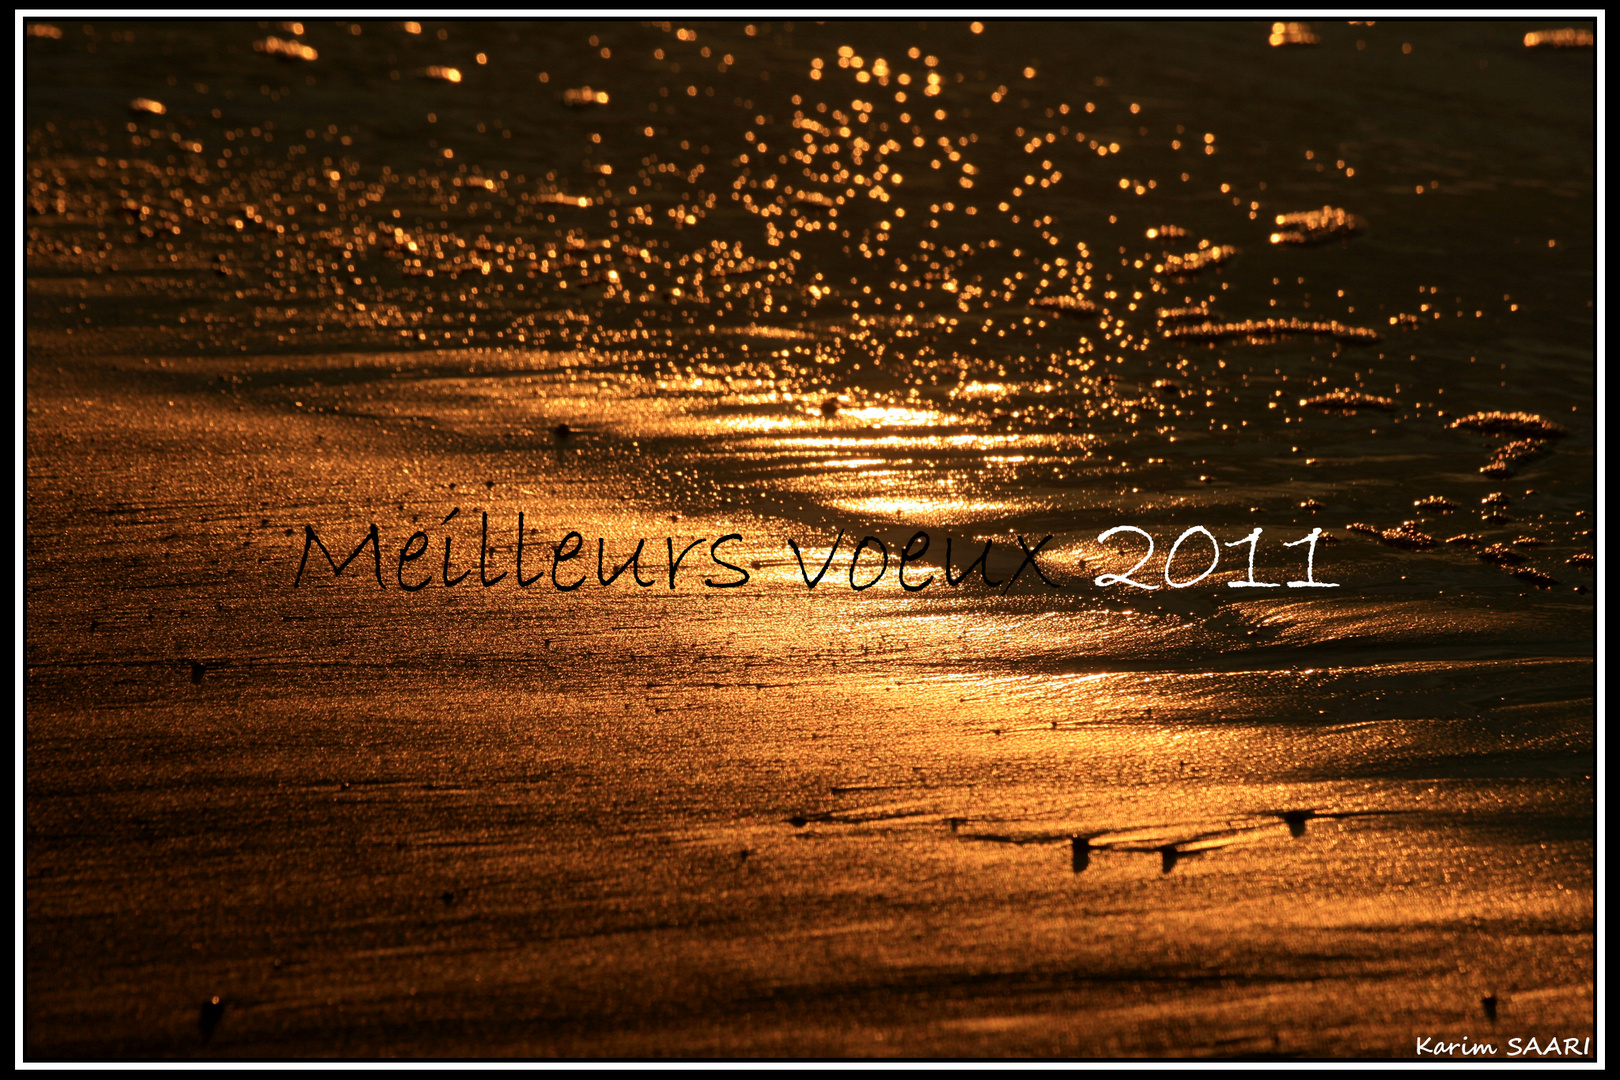 MEILLEURS VOEUX 2011 / BEST WISHES FOR 2011